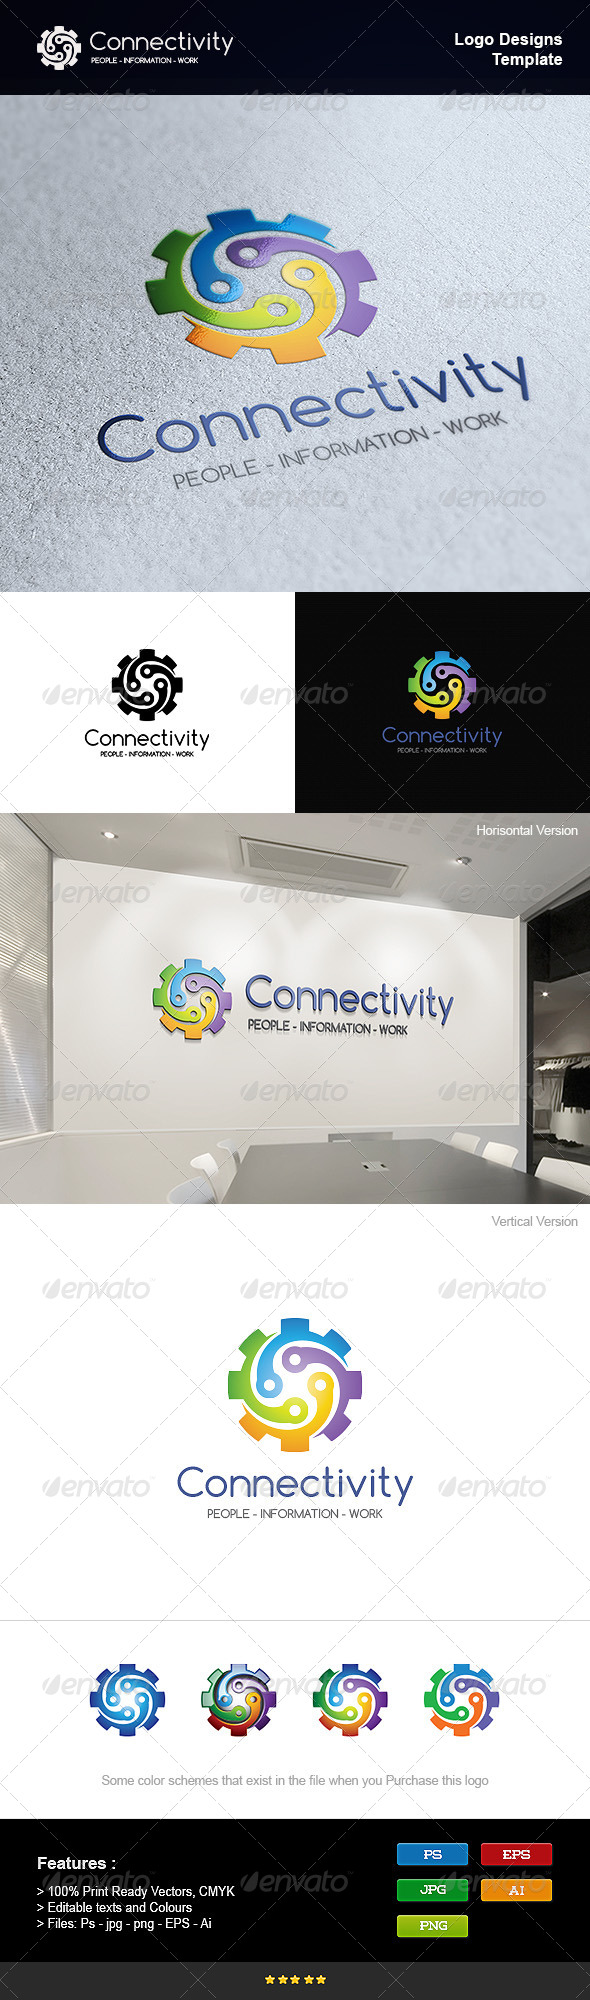 GraphicRiver Connectivity Gear 8232763